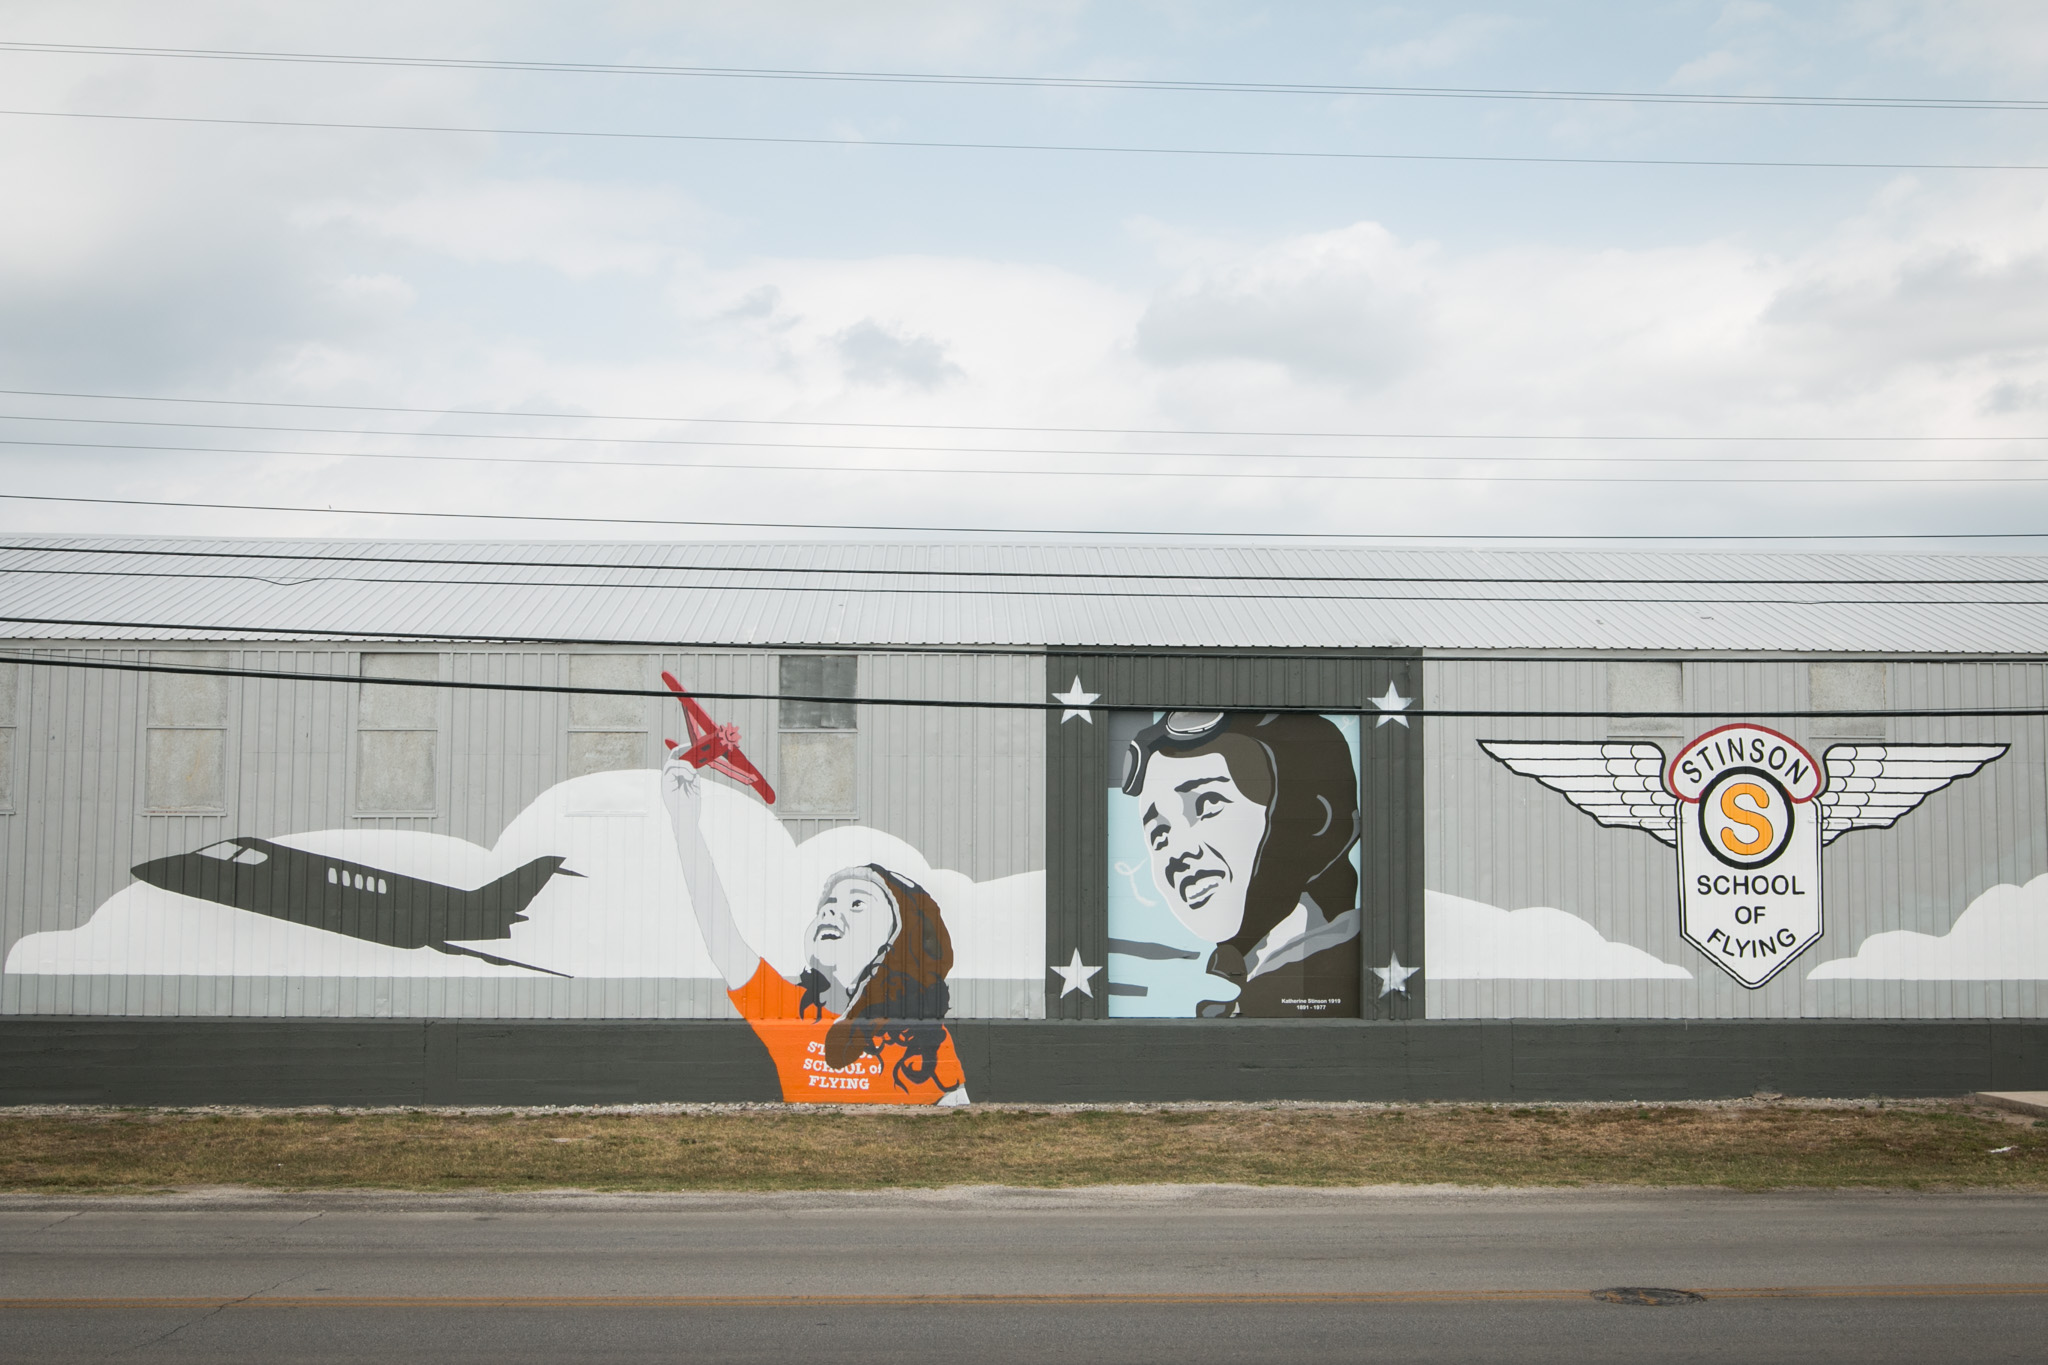 A new mural is seen at Stinson Municipal Airport.